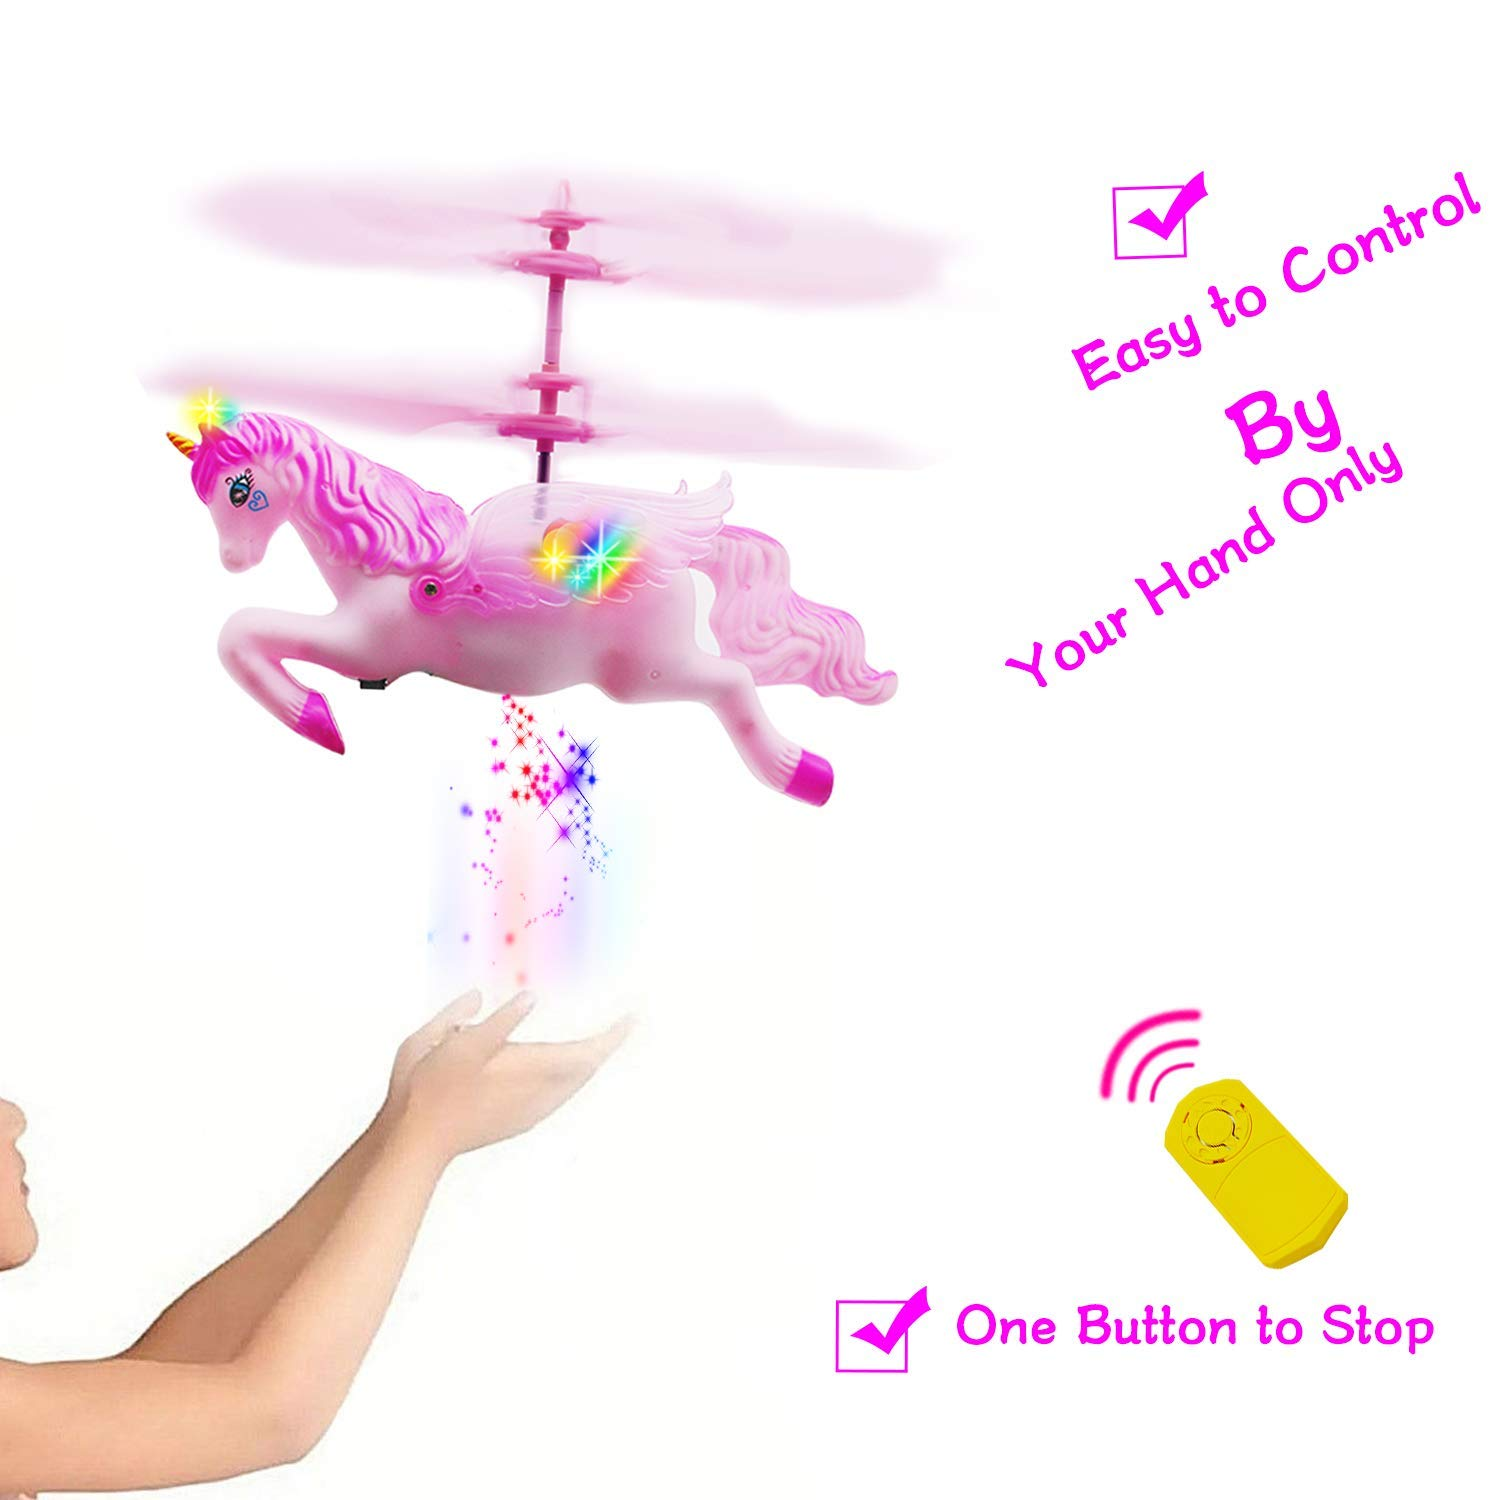 CJWPOWER Unicorn Toys, Pink Mini Flying Helicopter Unicorn Toy Gifts for Little Girls 6 Years Old Up Birthday Xmas Party Supplies by CJWPOWER (Image #2)